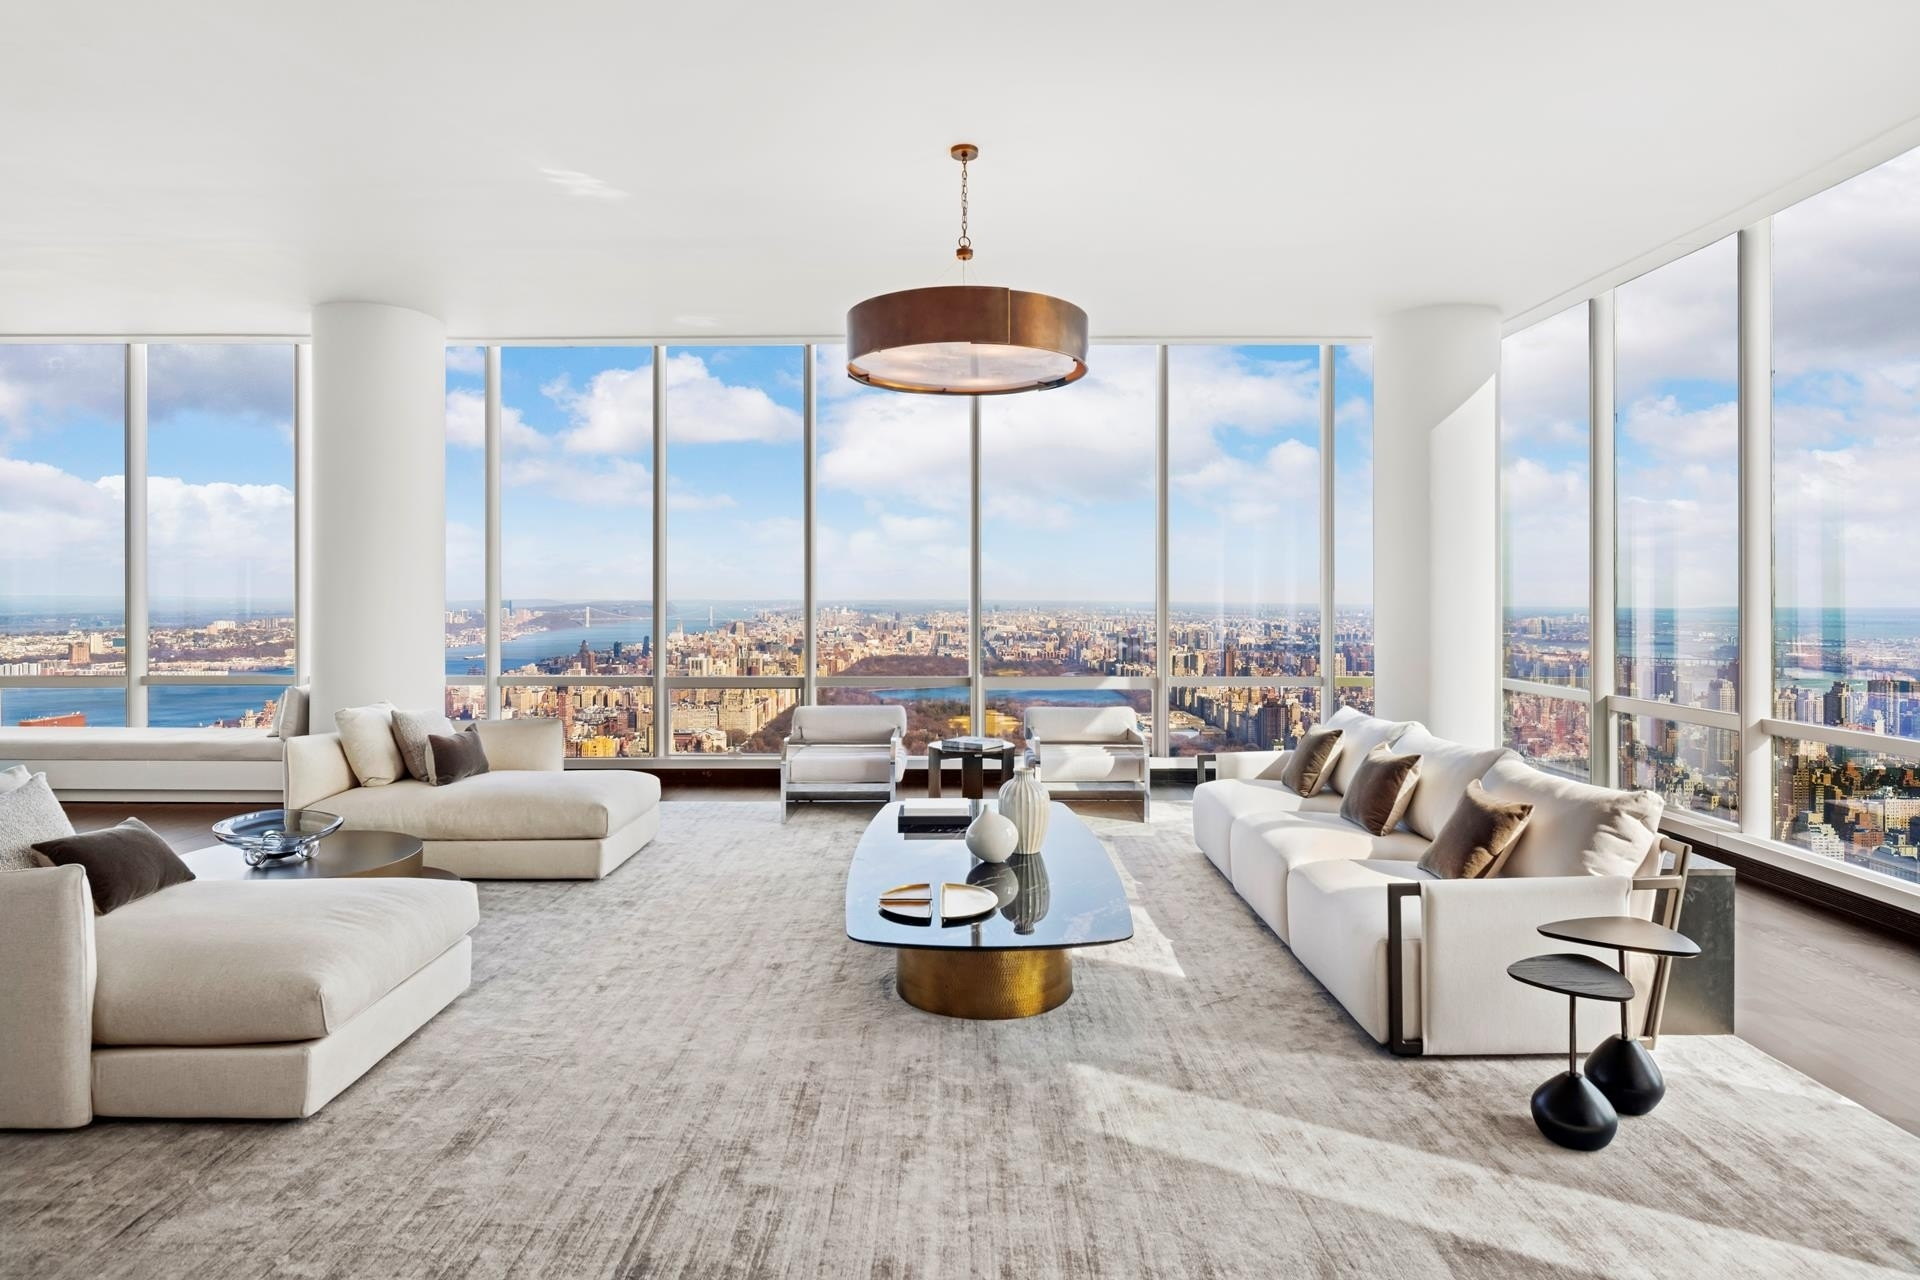 2. Condominiums for Sale at One57, 157 West 57th St, 87 Midtown West, New York, NY 10019